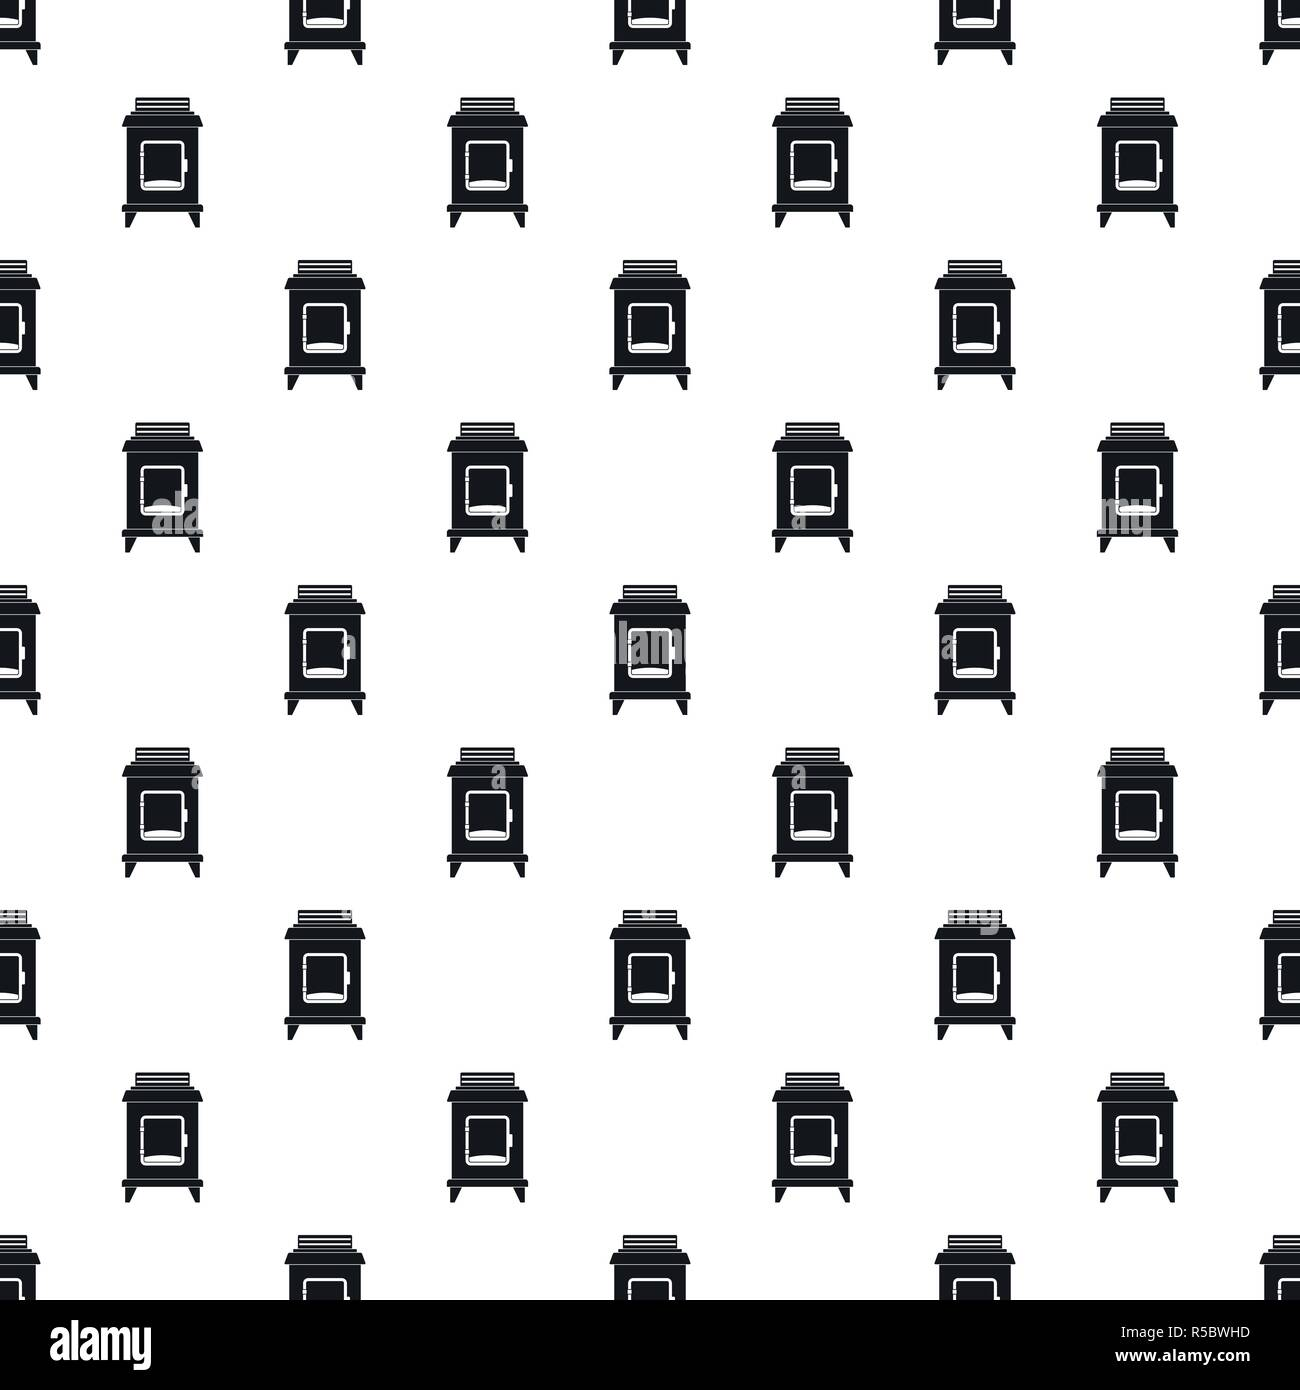 Old oven pattern seamless vector repeat geometric for any web design - Stock Vector